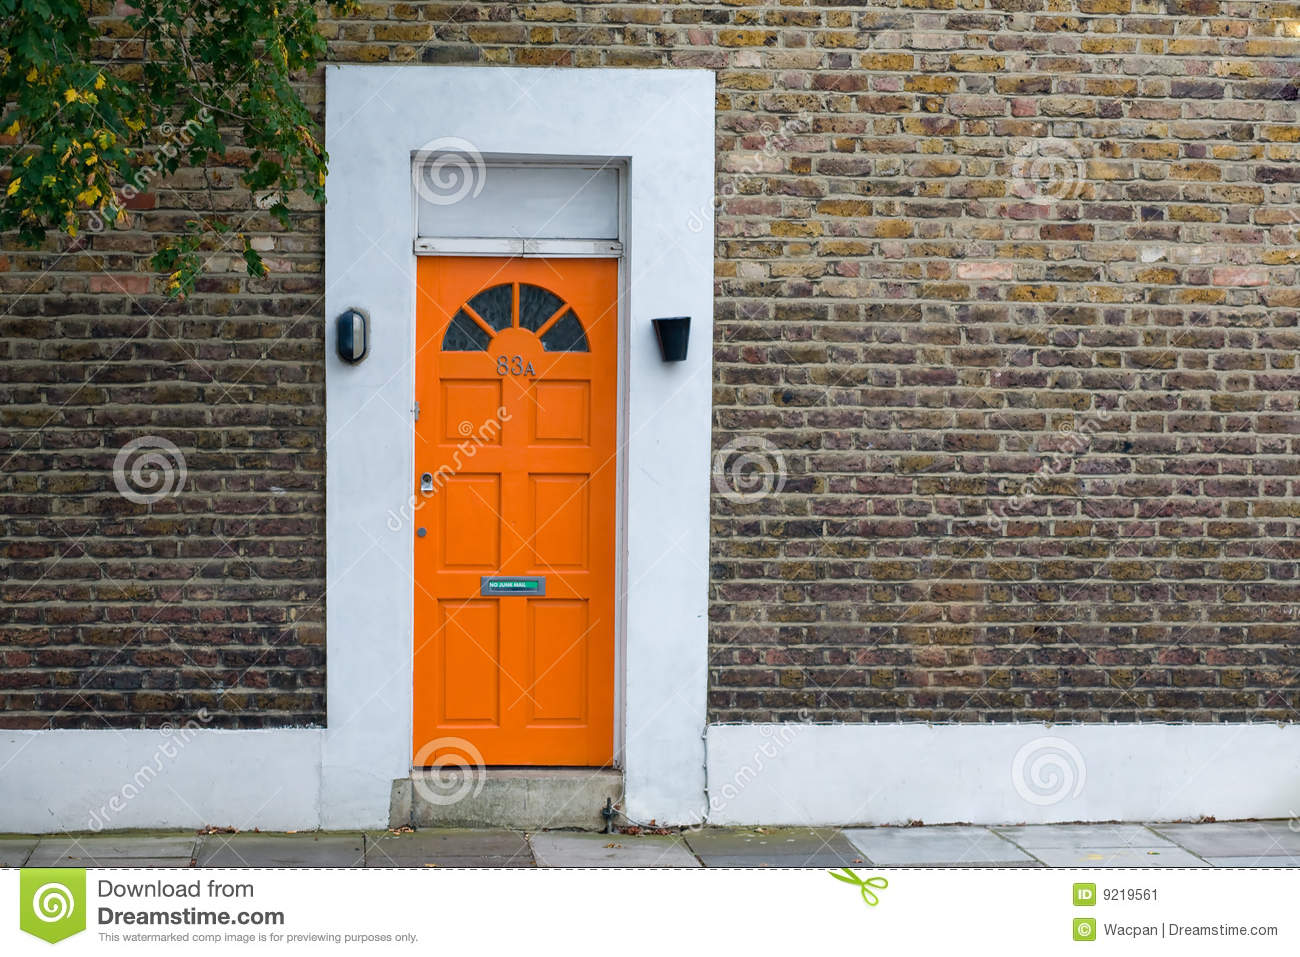 House with orange door